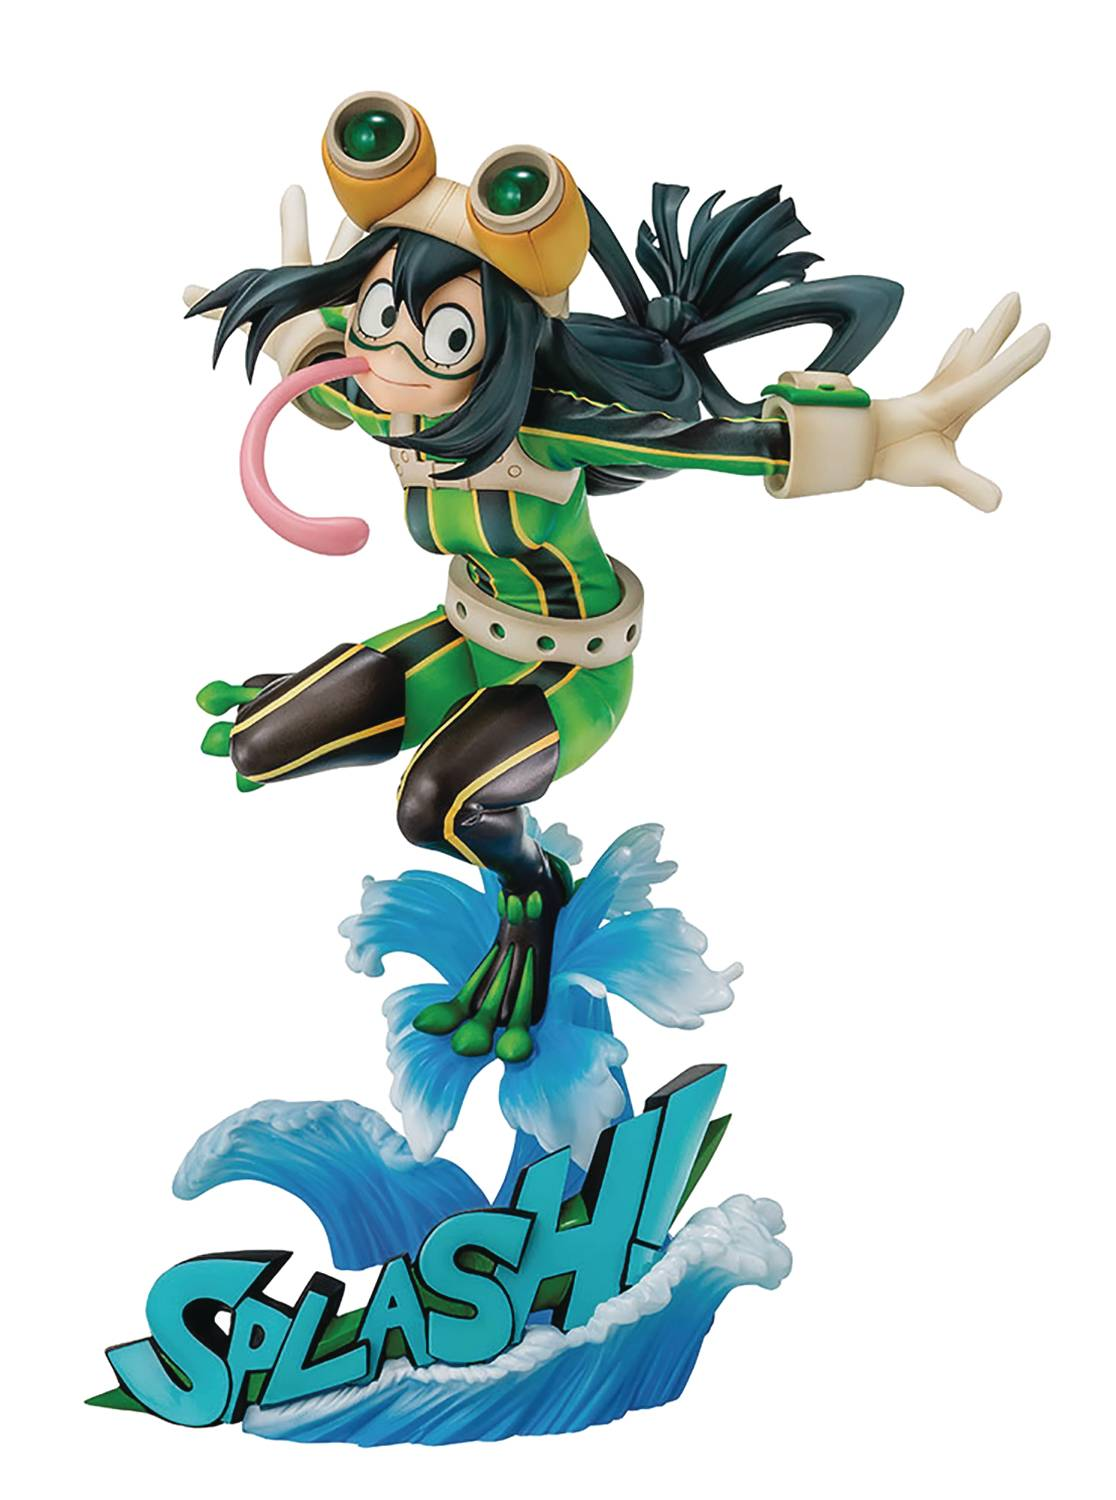 MY HERO ACADEMIA TSUYU ASUI 1/8 PVC FIG HERO SUIT VER